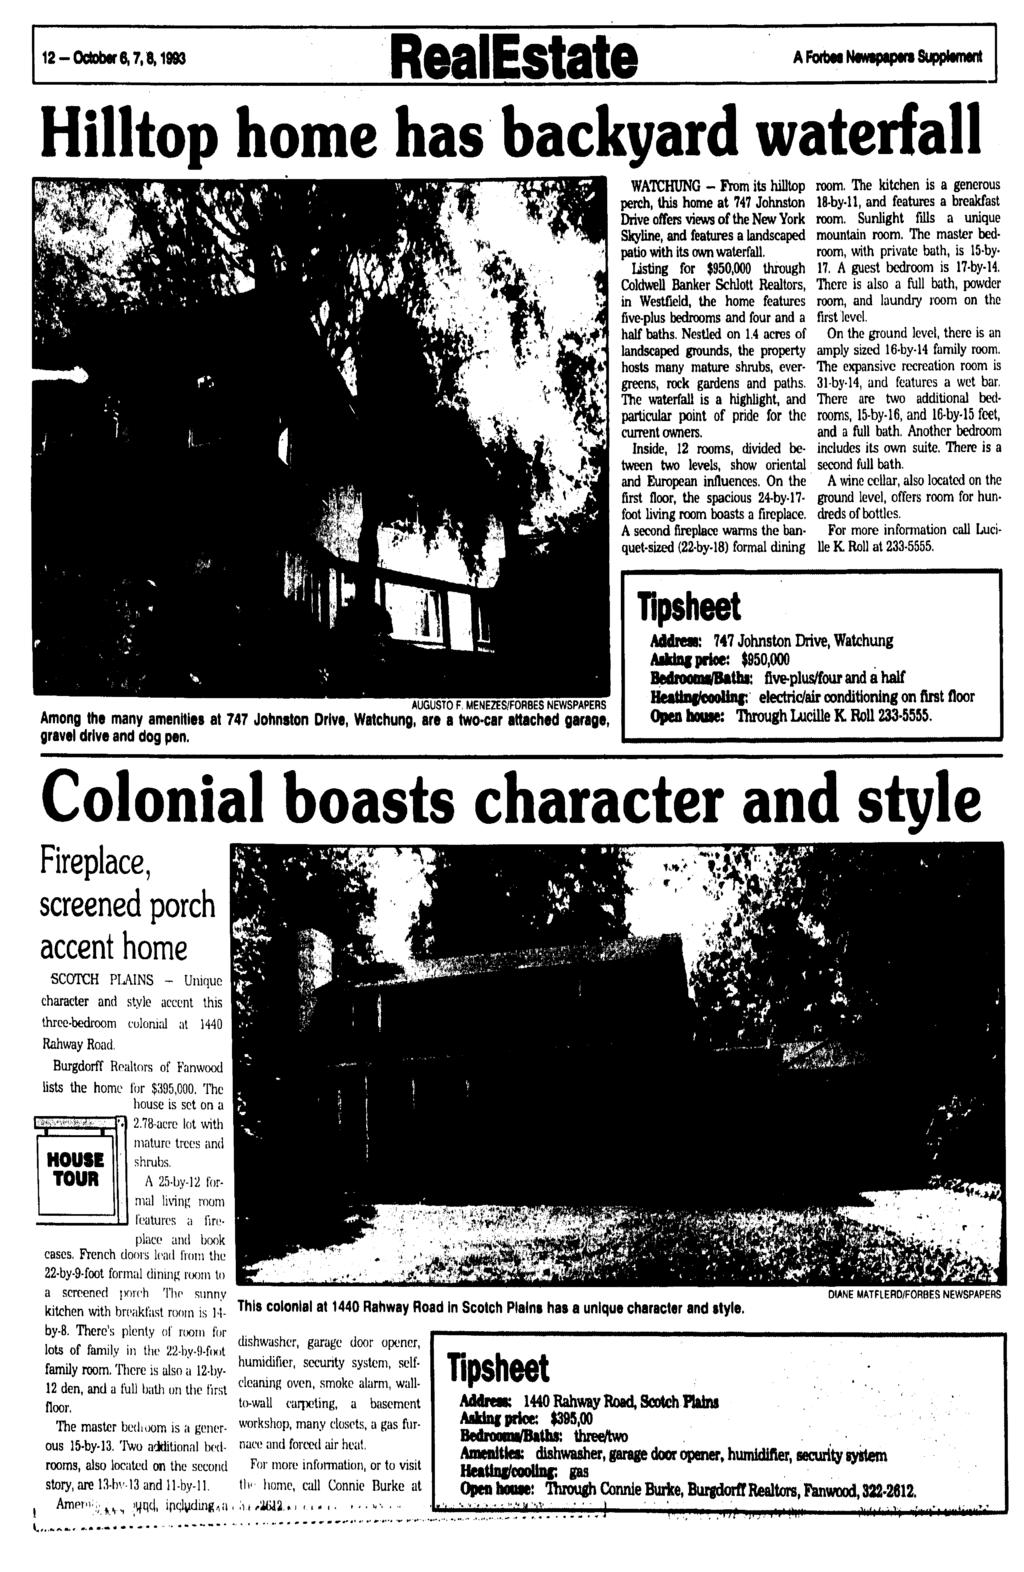 12 -October 6,7,6,1993 RealEstate A ForbM Newspapers Supplement Hilltop home has backyard waterfall WATCHUNG - From its hilltop perch, this home at 747 Johnston Drive offers views of the New York